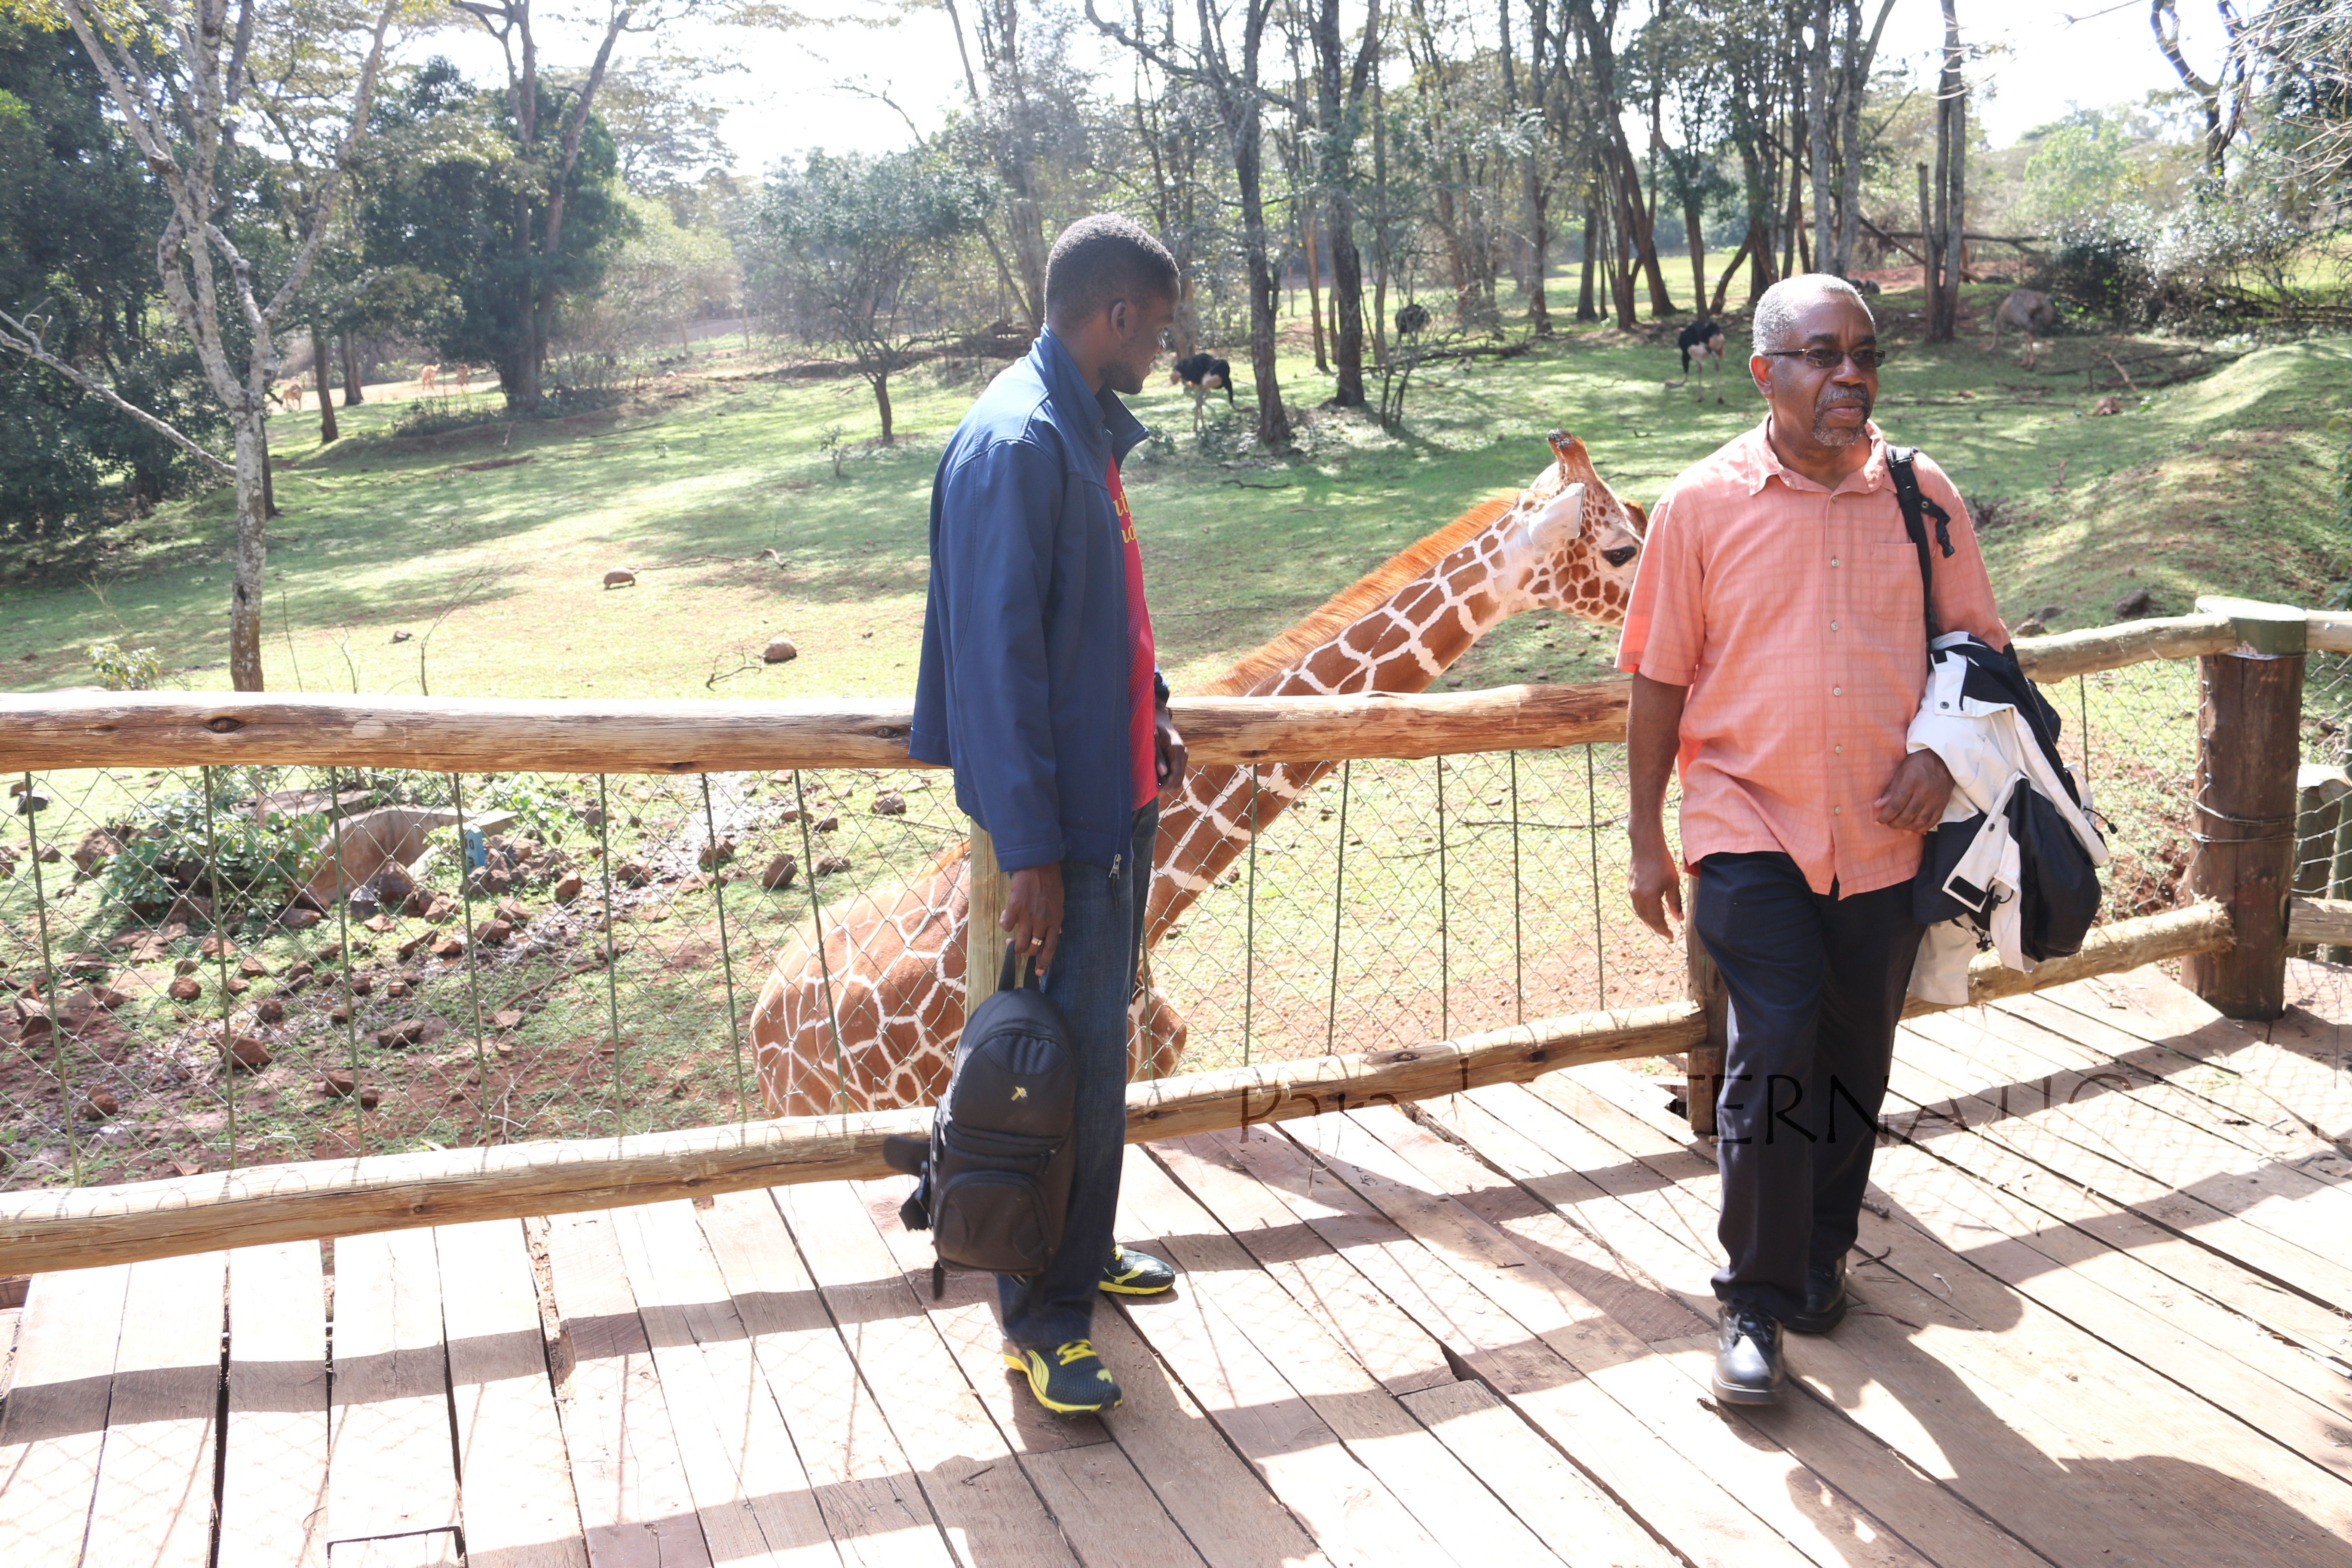 Kenyan wildlife: Baba Courtney really wasn't having any of it with that giraffe...